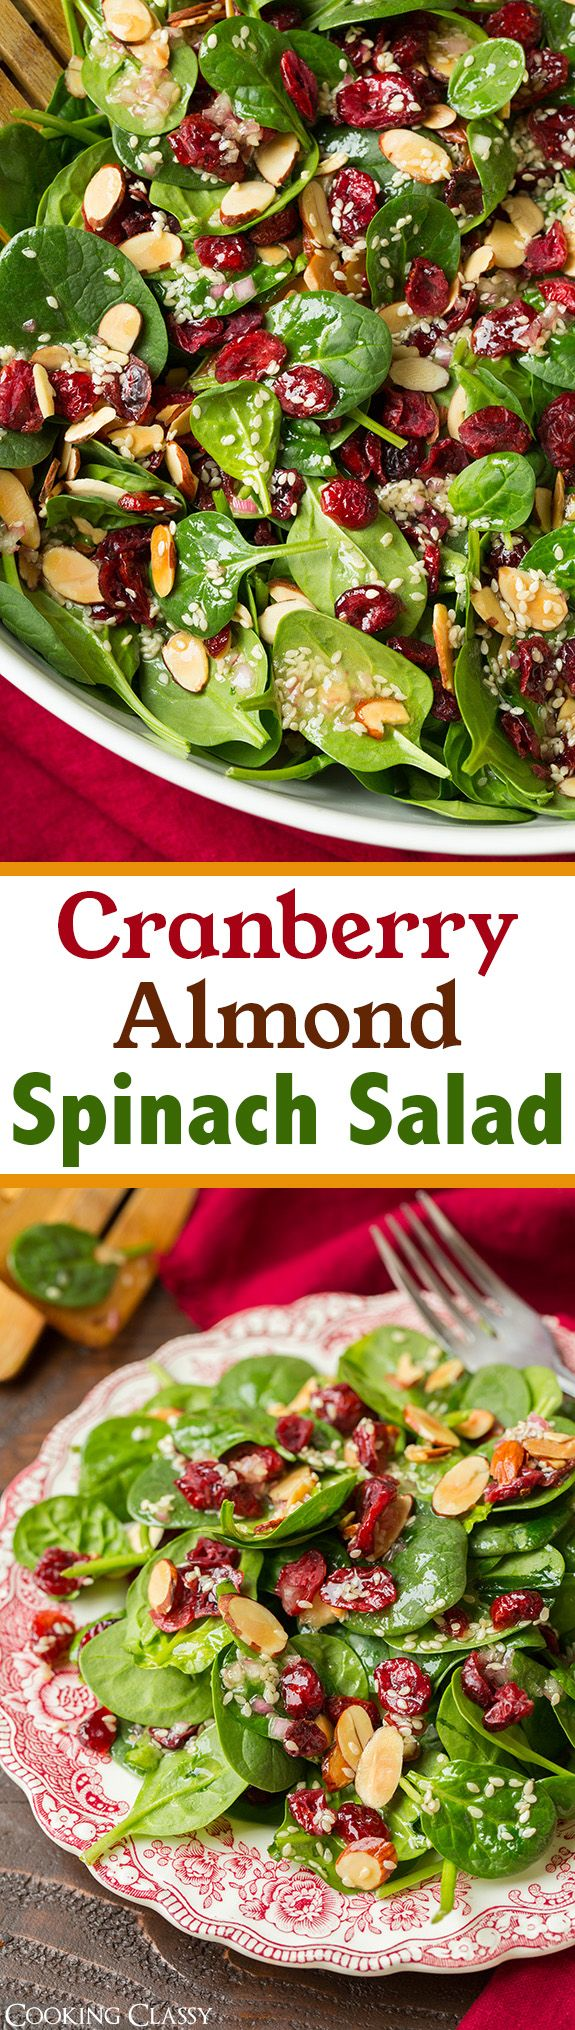 Cranberry Almond Spinach Salad with Sesame Seed Dressing – A delicious, simple and